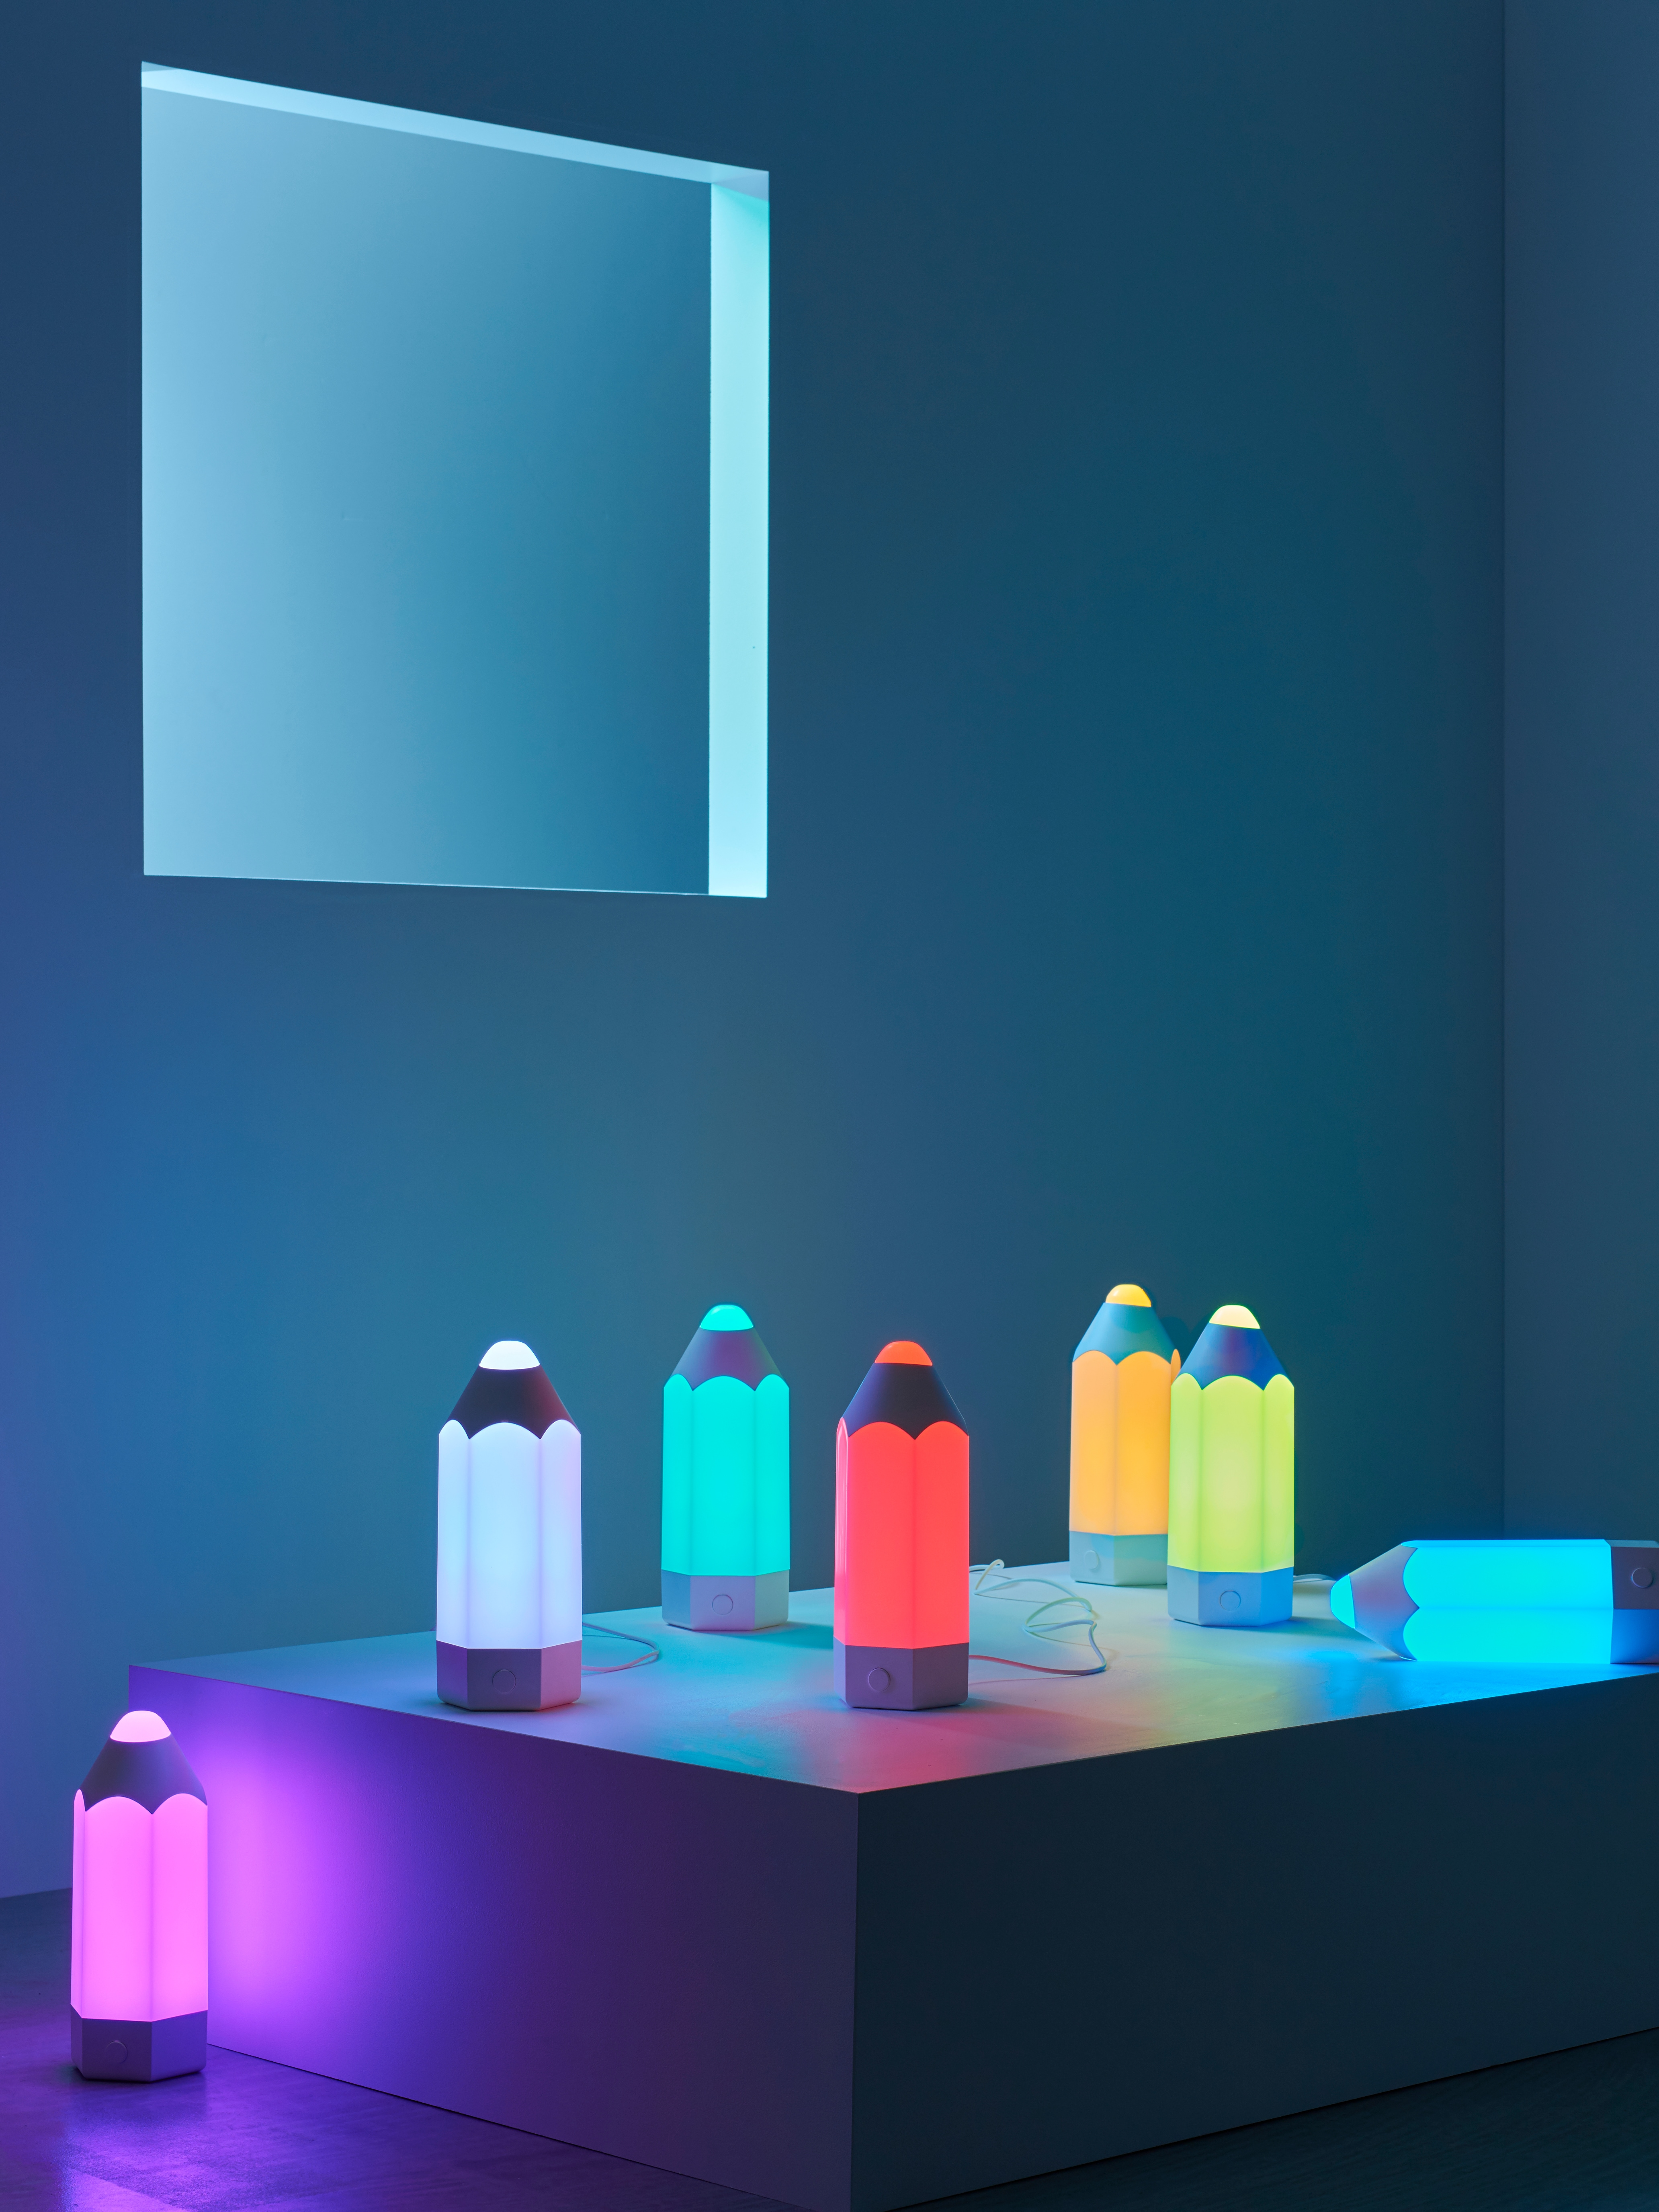 A selection of PELARBOJ table lamps in different colors, on display against a blue background with window opening.